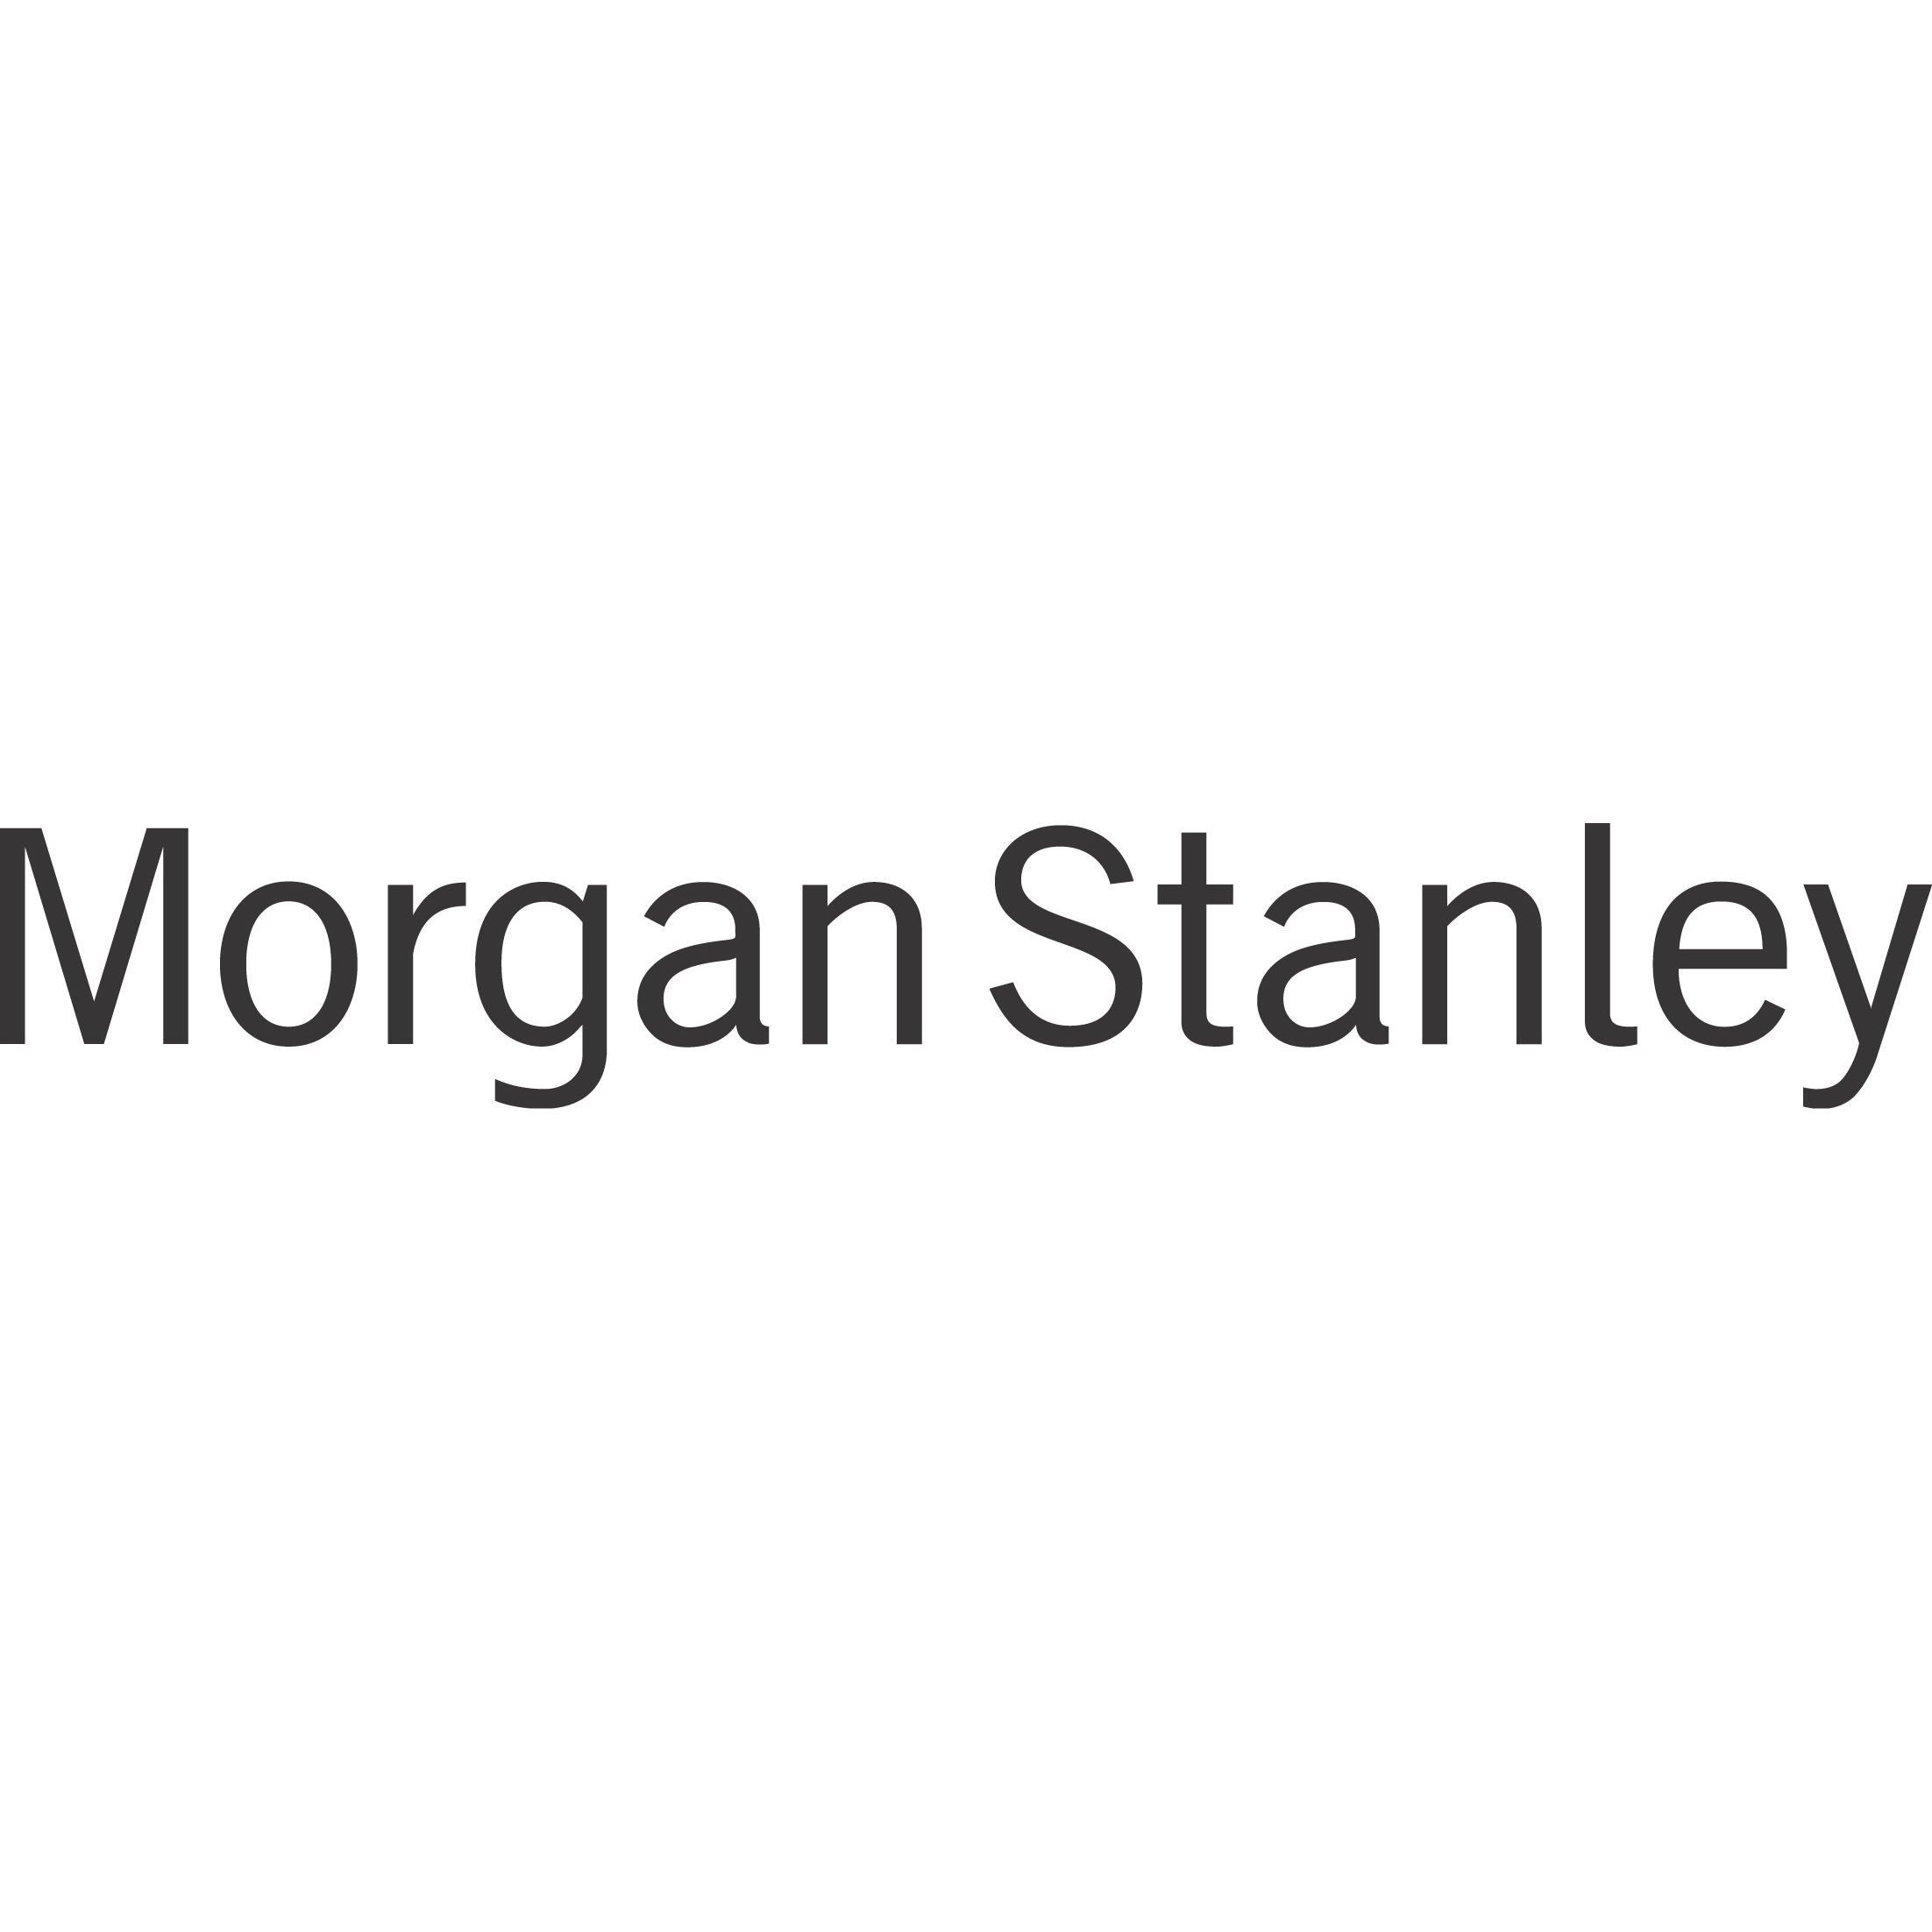 Morgan Stanley | Financial Advisor in Green Bay,Wisconsin